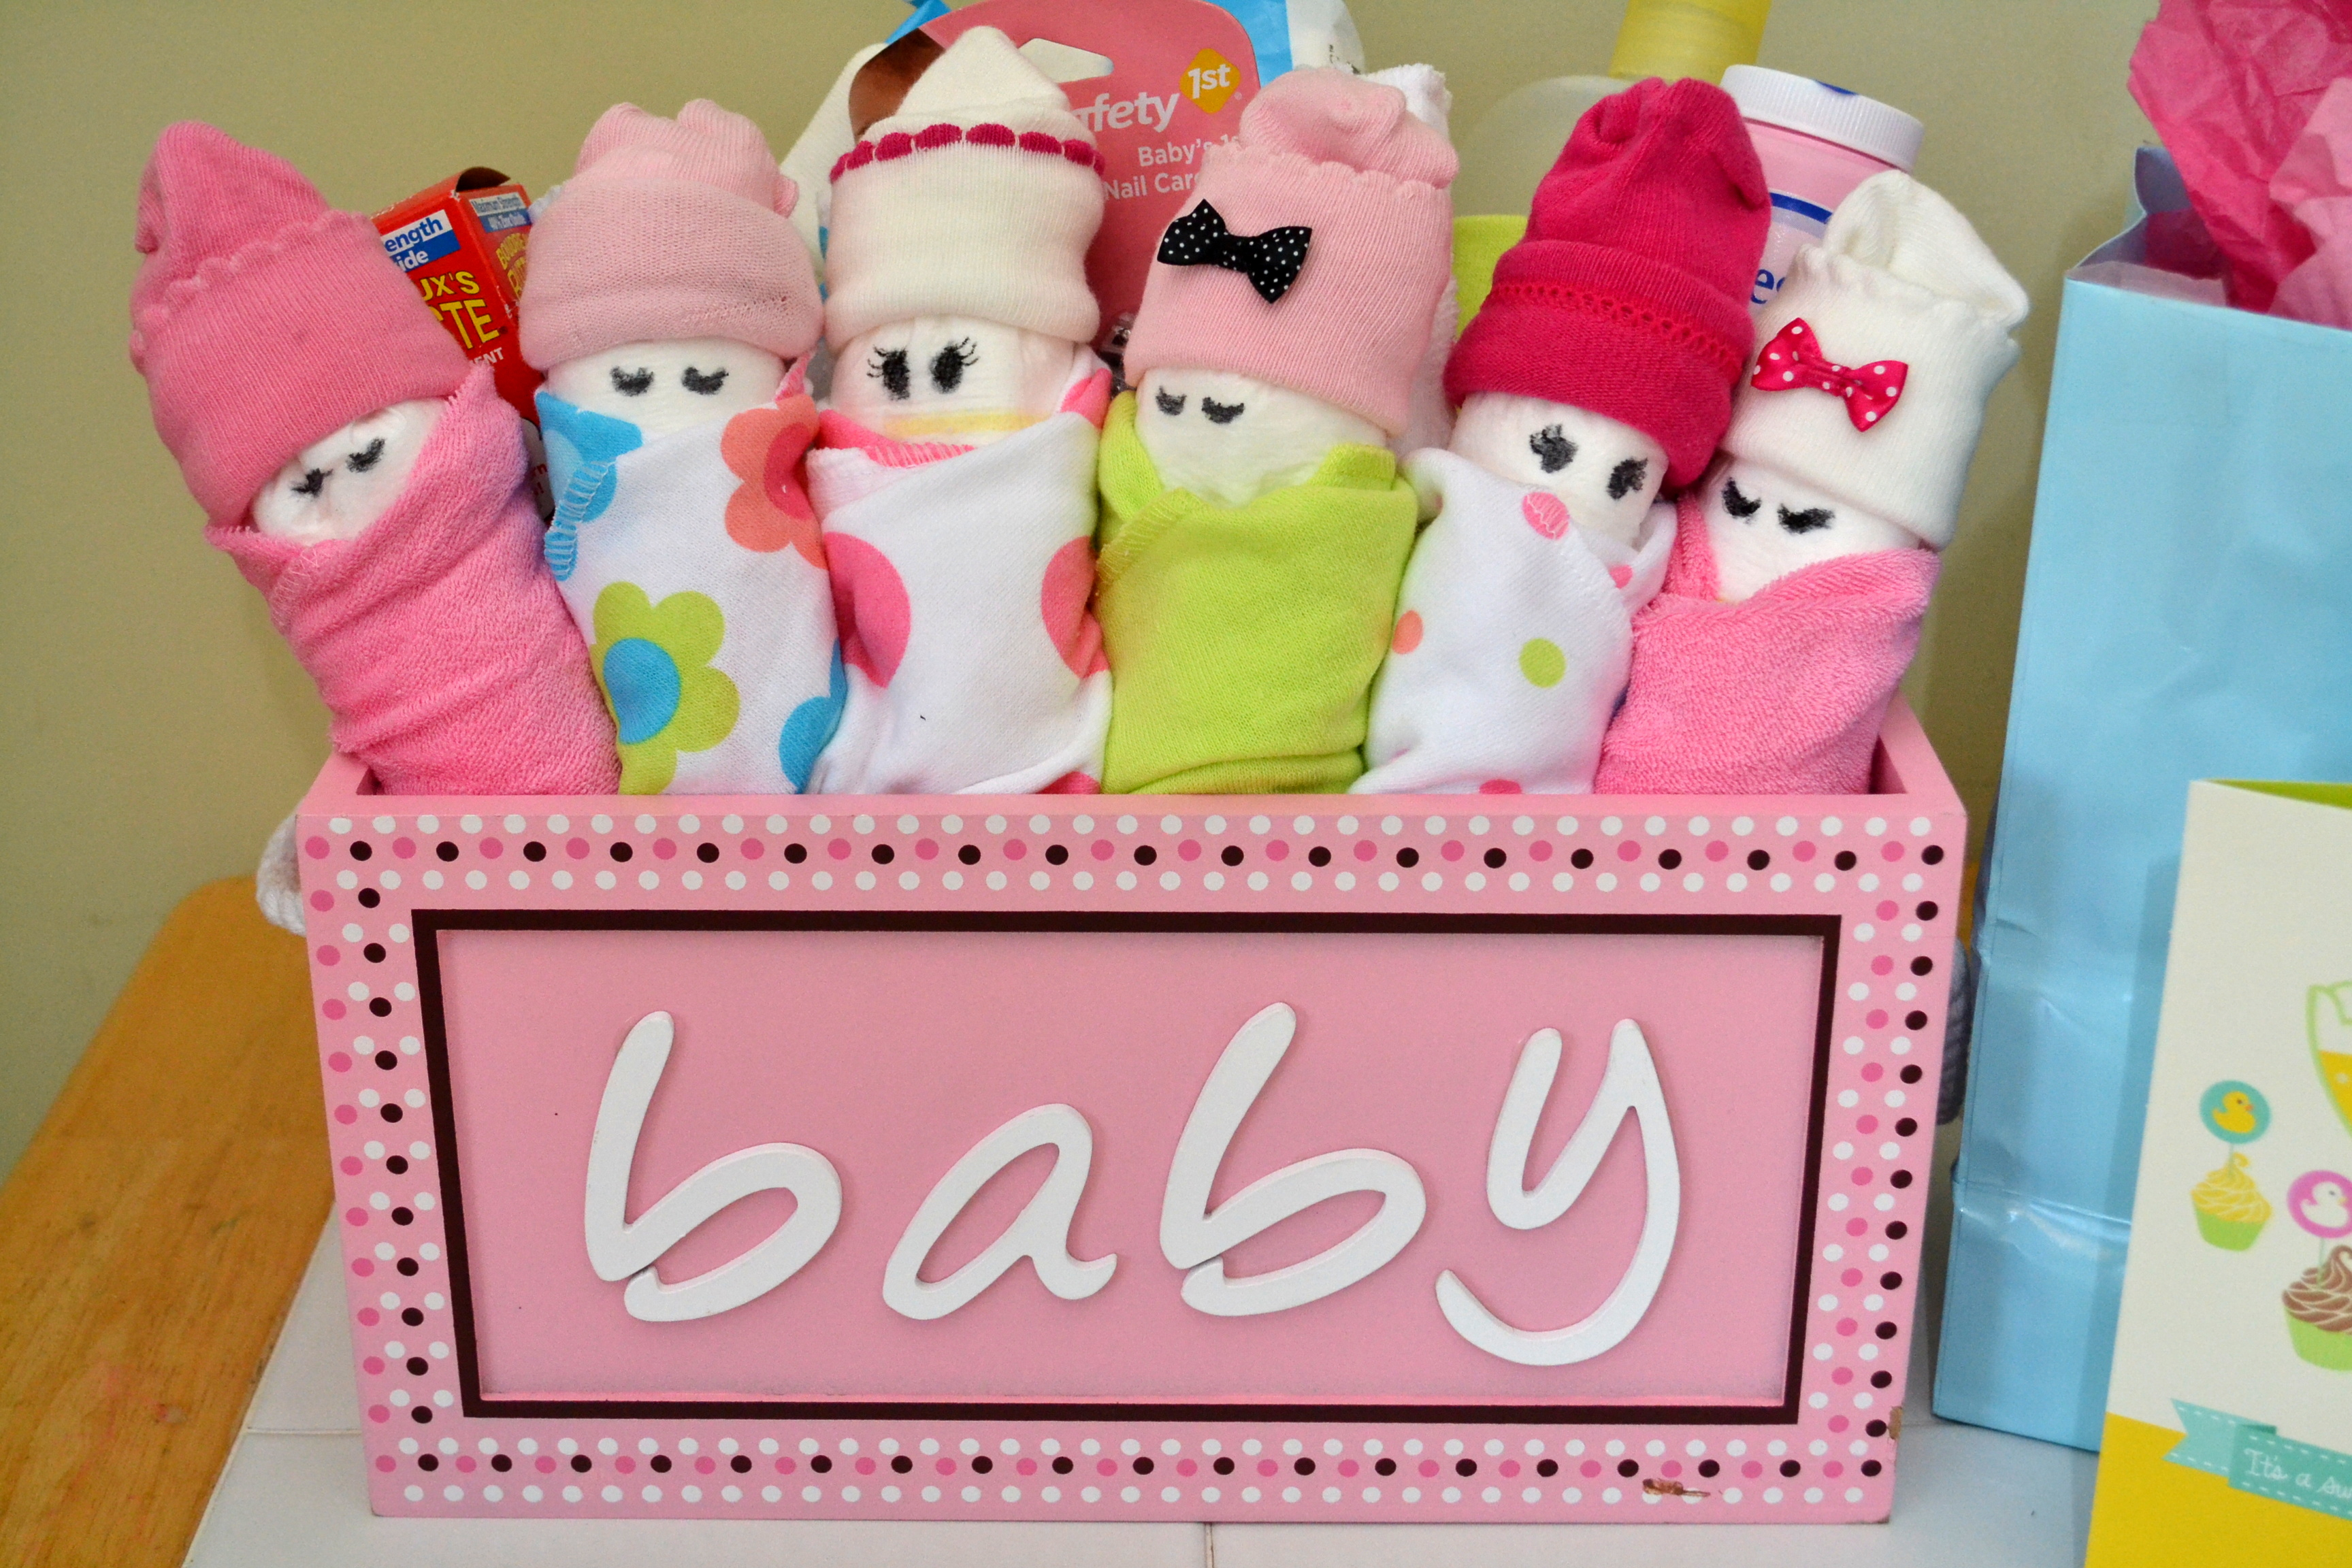 Top Baby Shower Gifts Diaper Babies Essential Baby Shower Gifts Diy Diaper Babies Owl Baby Shower Favors To Make Baby Shower Favors Ideas To Make Yourself baby shower Baby Shower Favors To Make